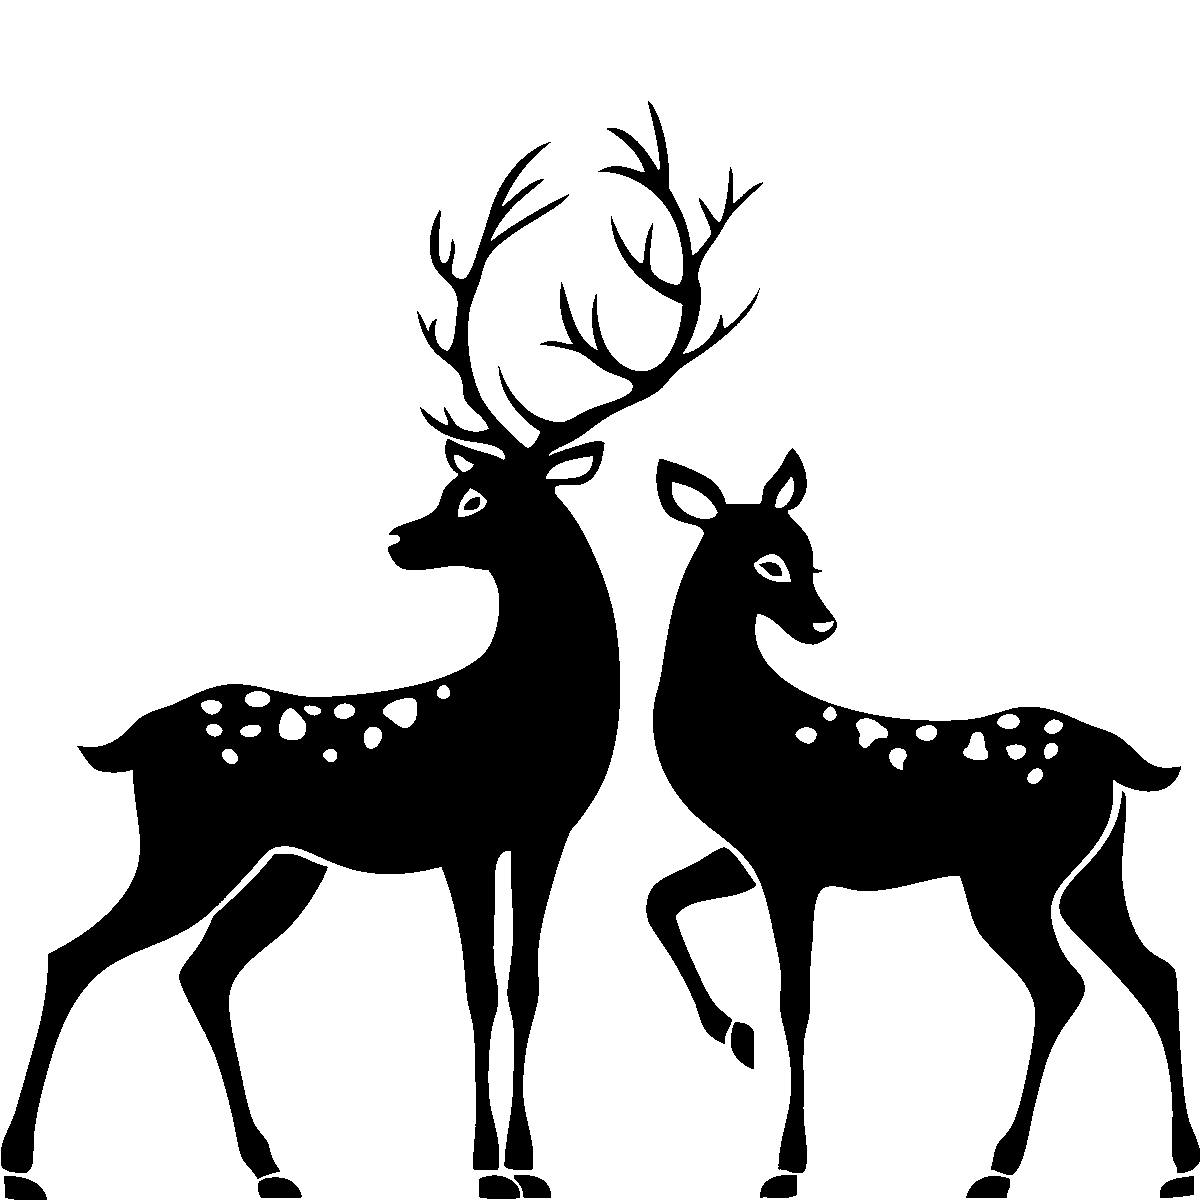 Deer silhouette buck and. Families clipart reindeer